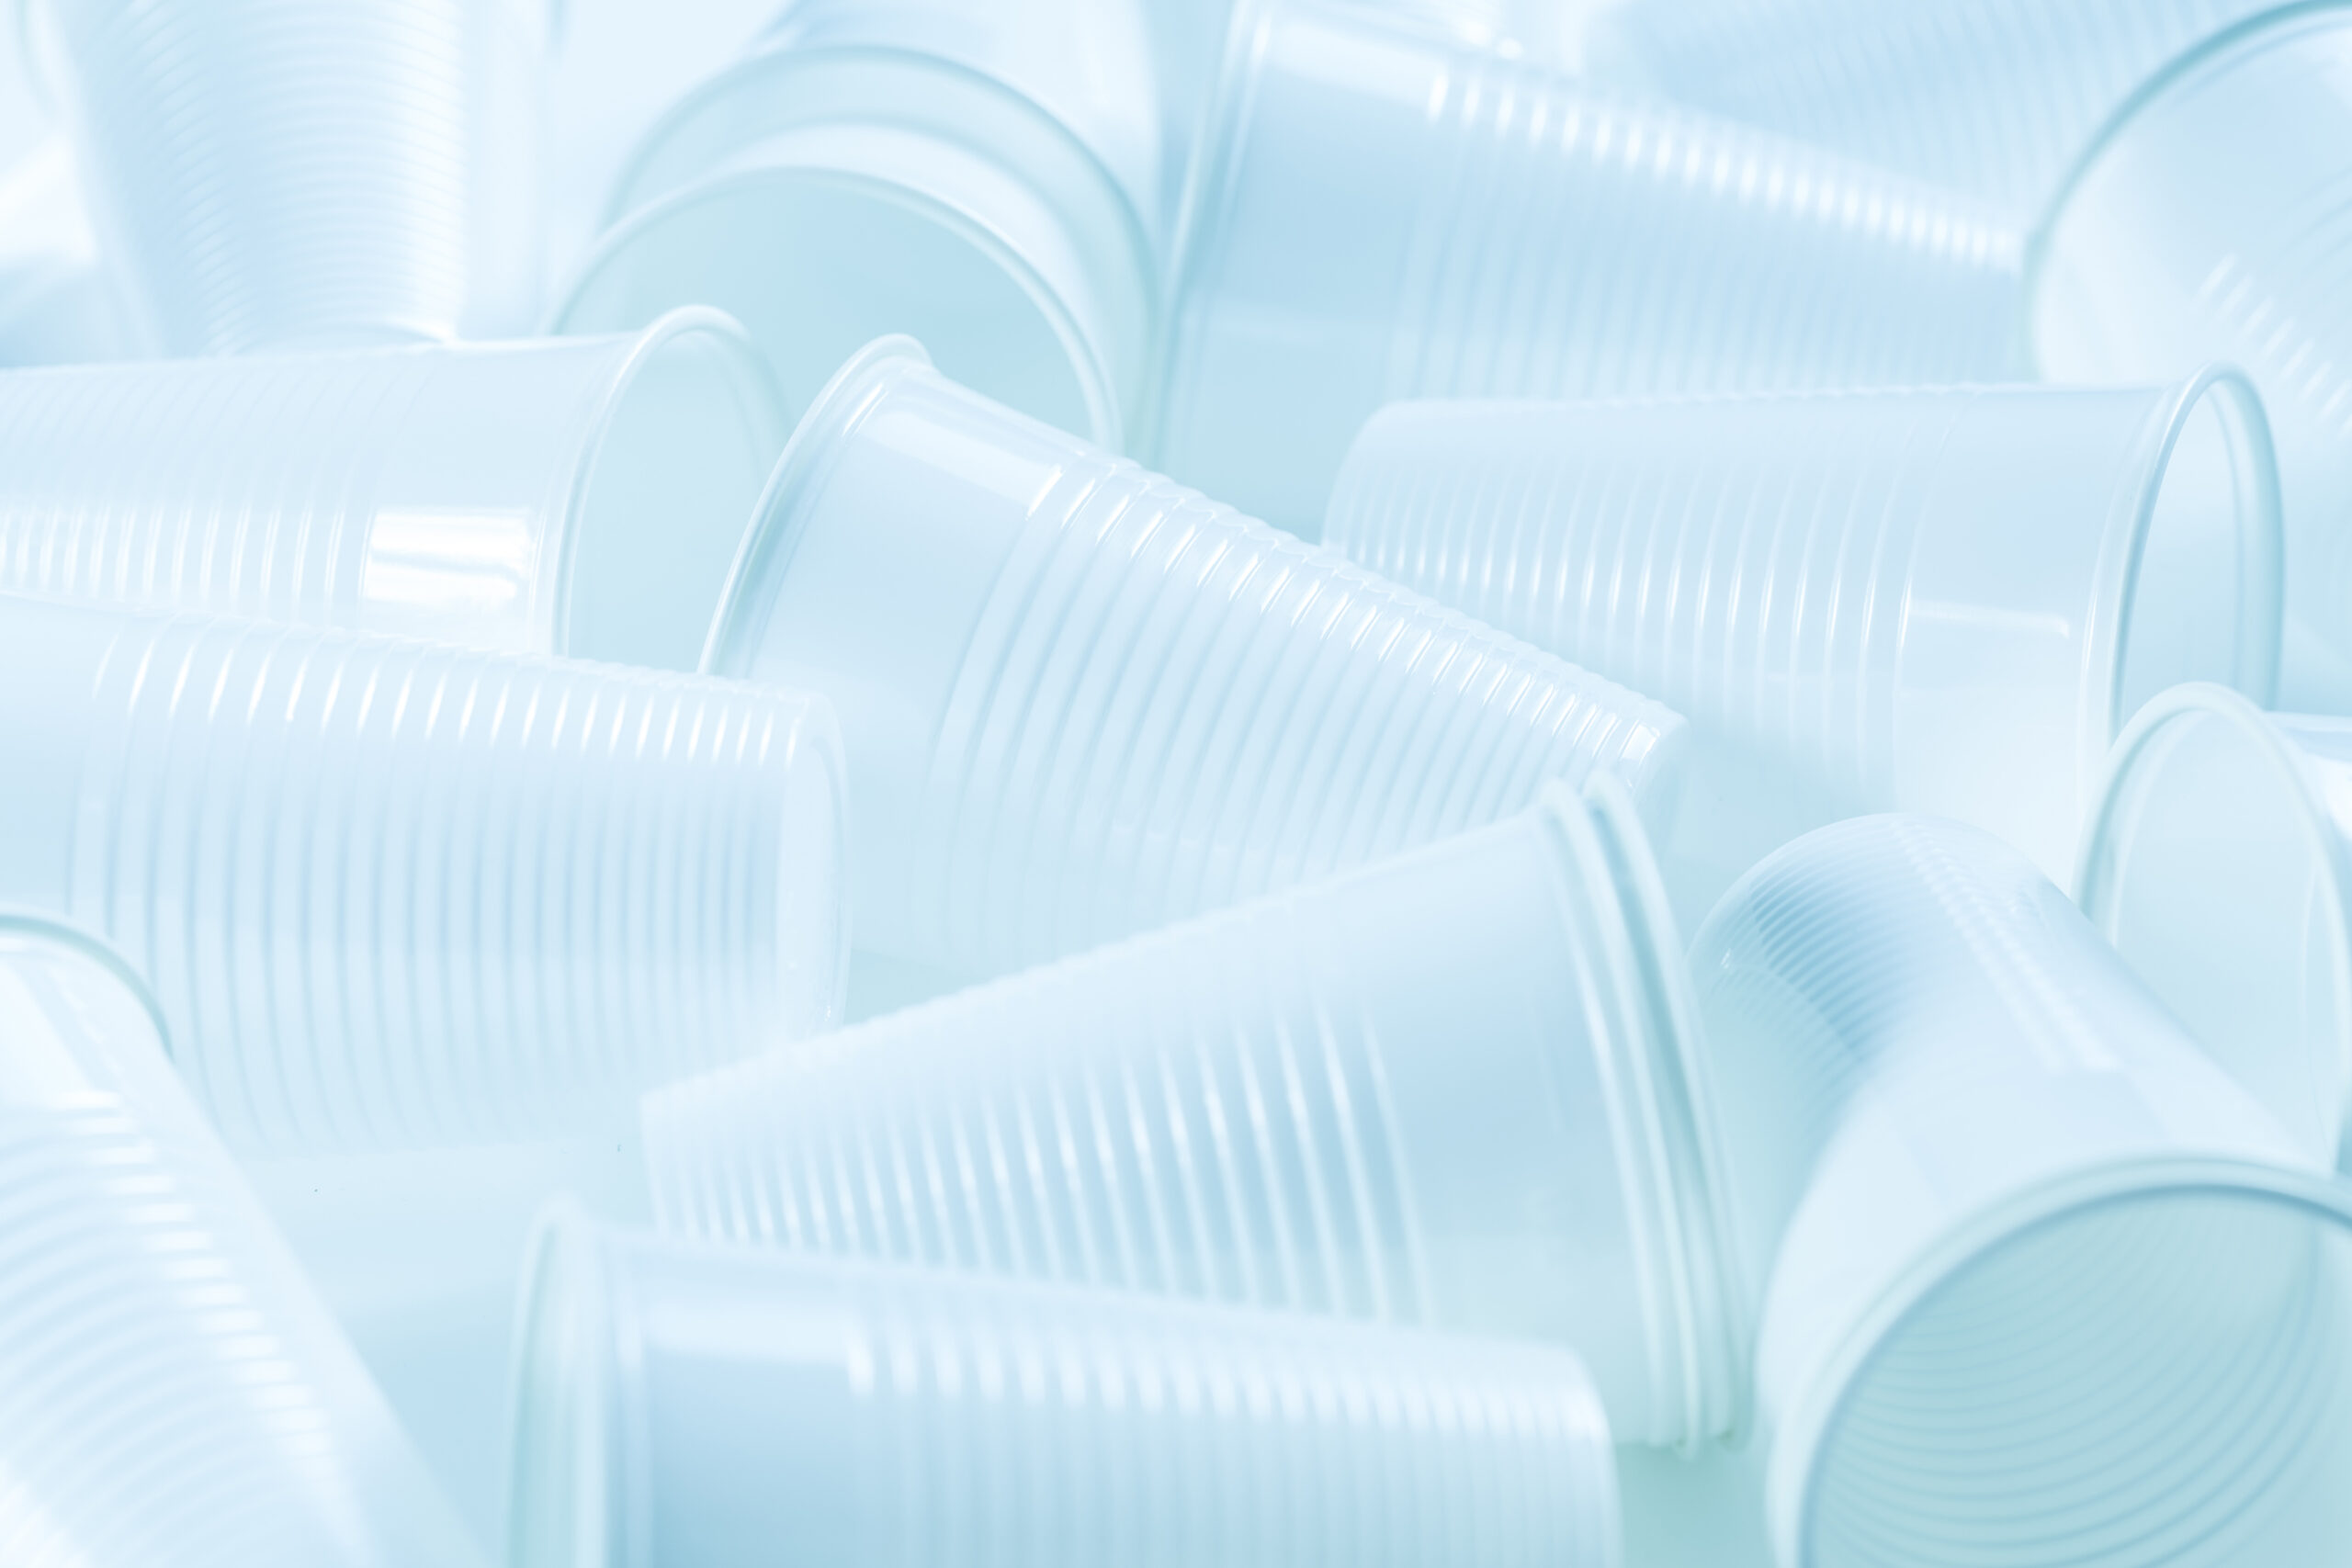 disposable-plastic-cups-as-background-environmenta-compressed